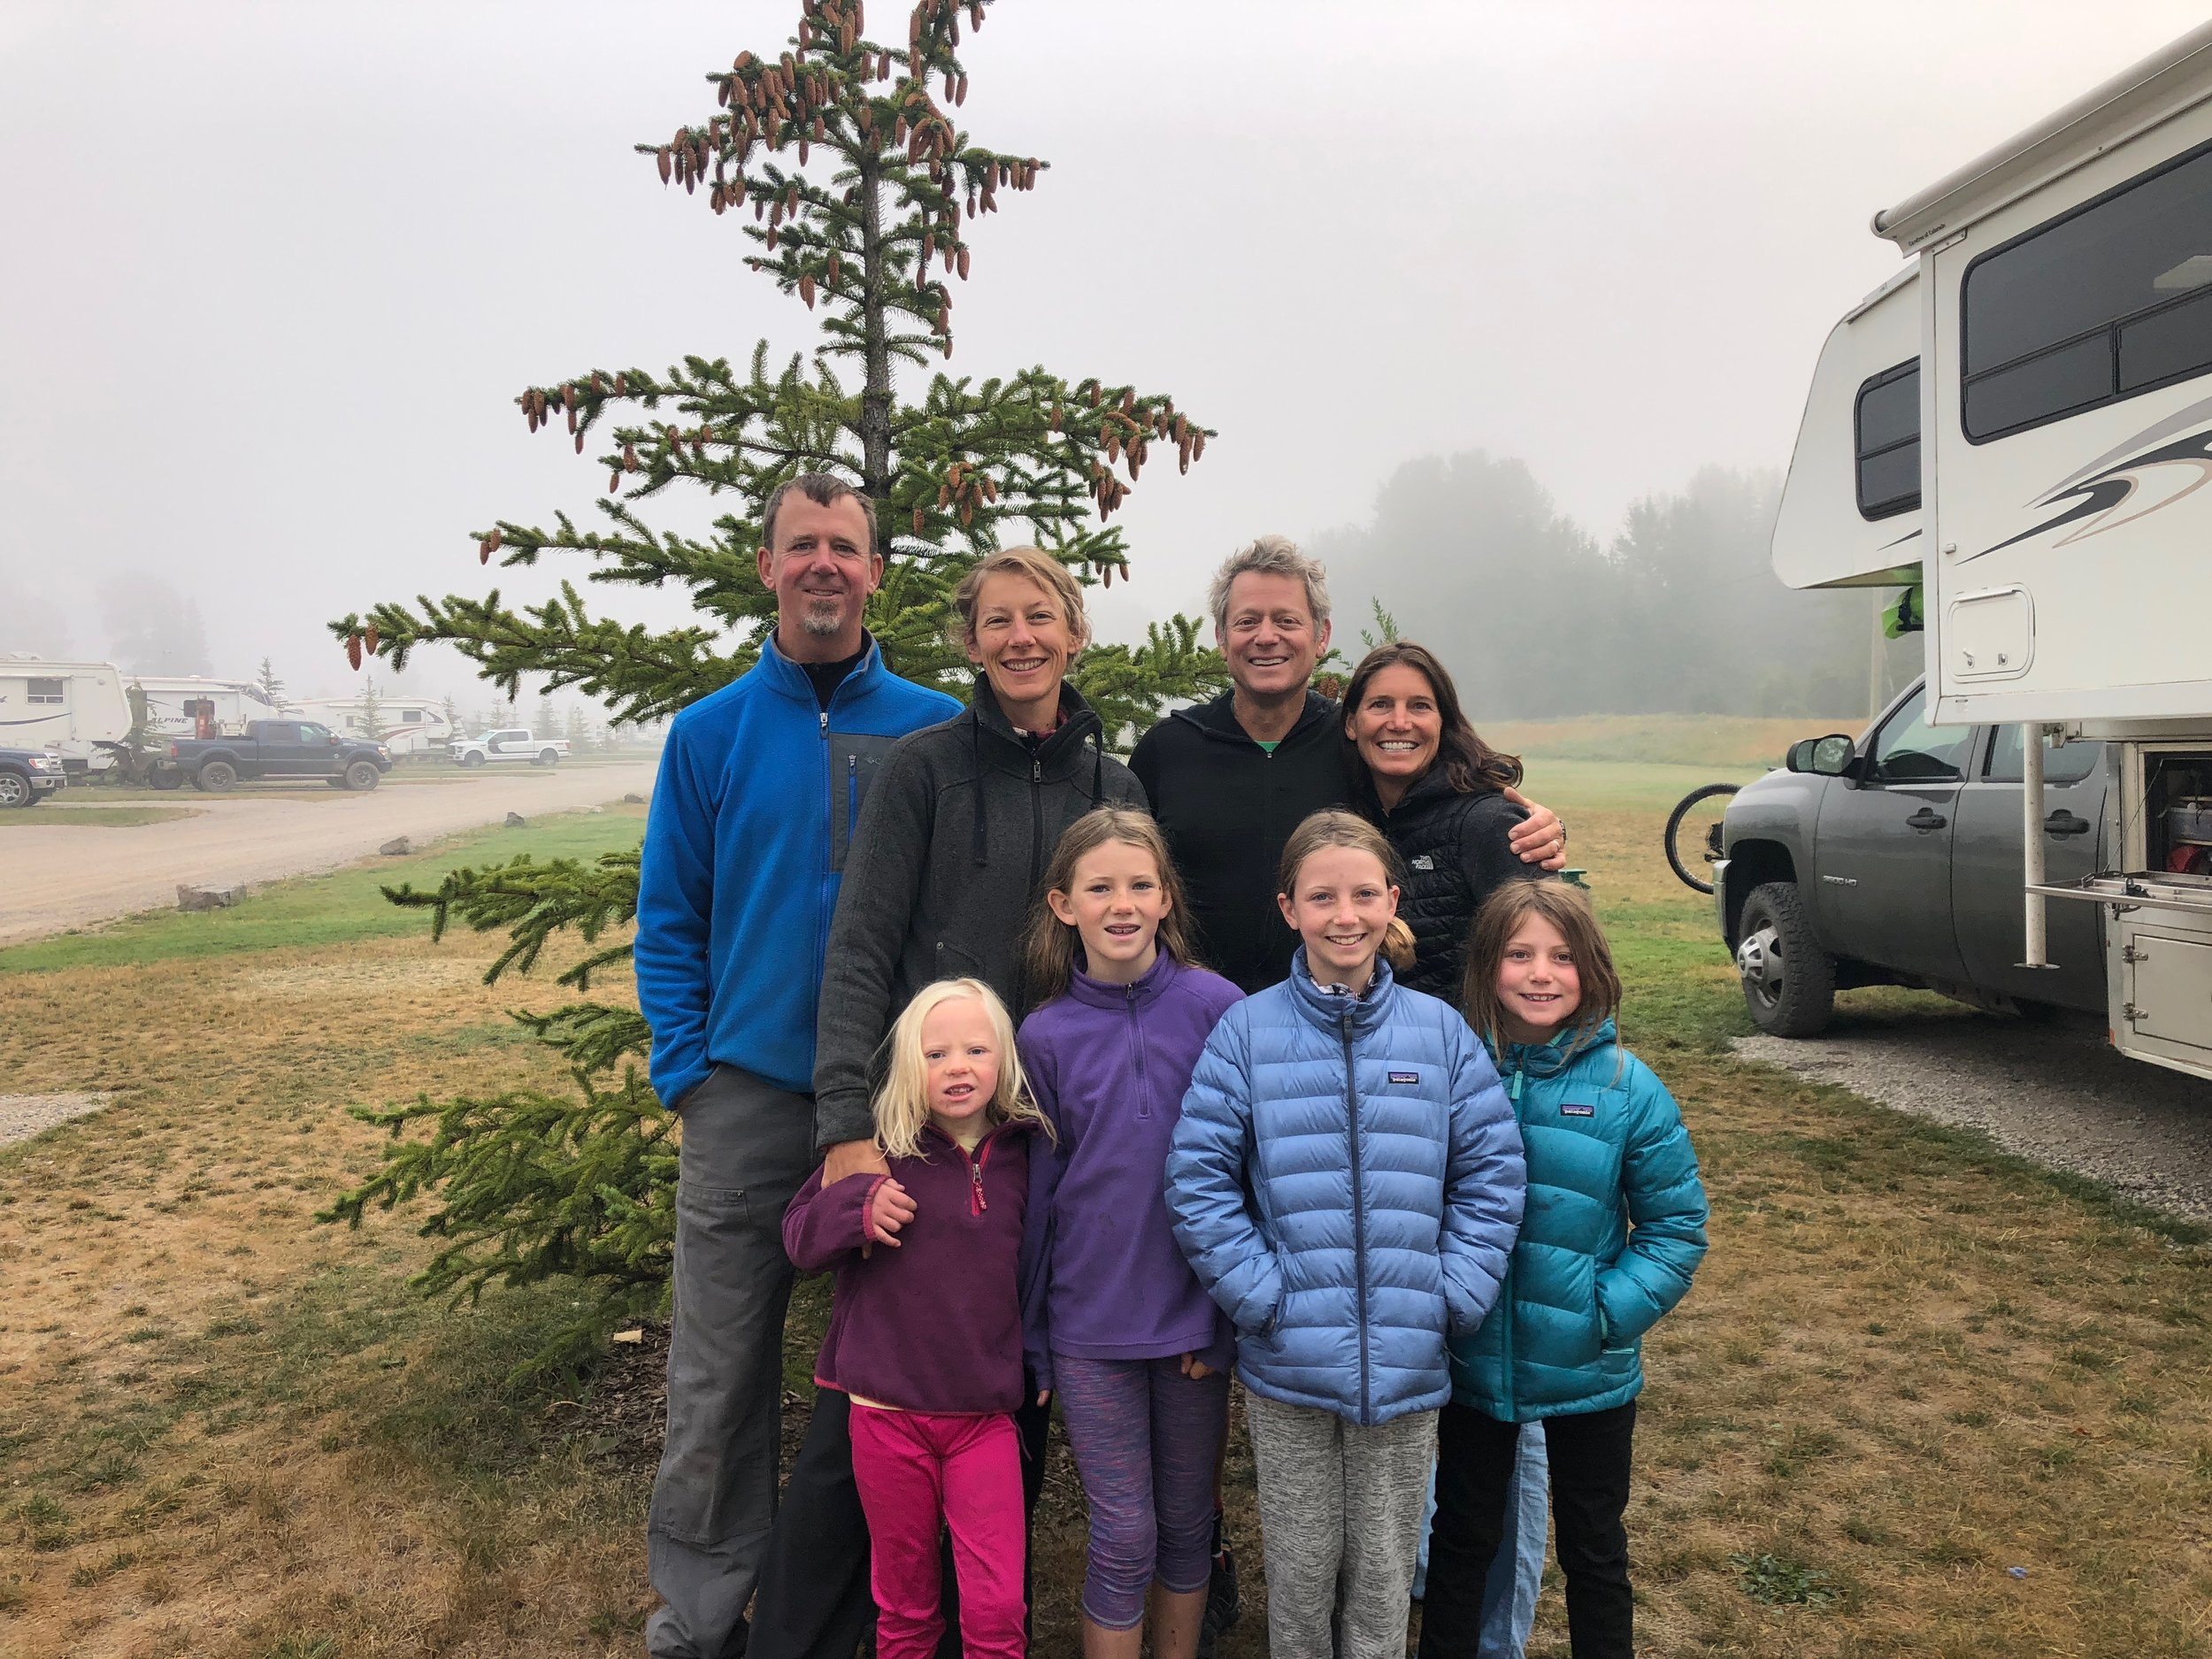 The Fernie, BC crew - the Schlich and Shaw families